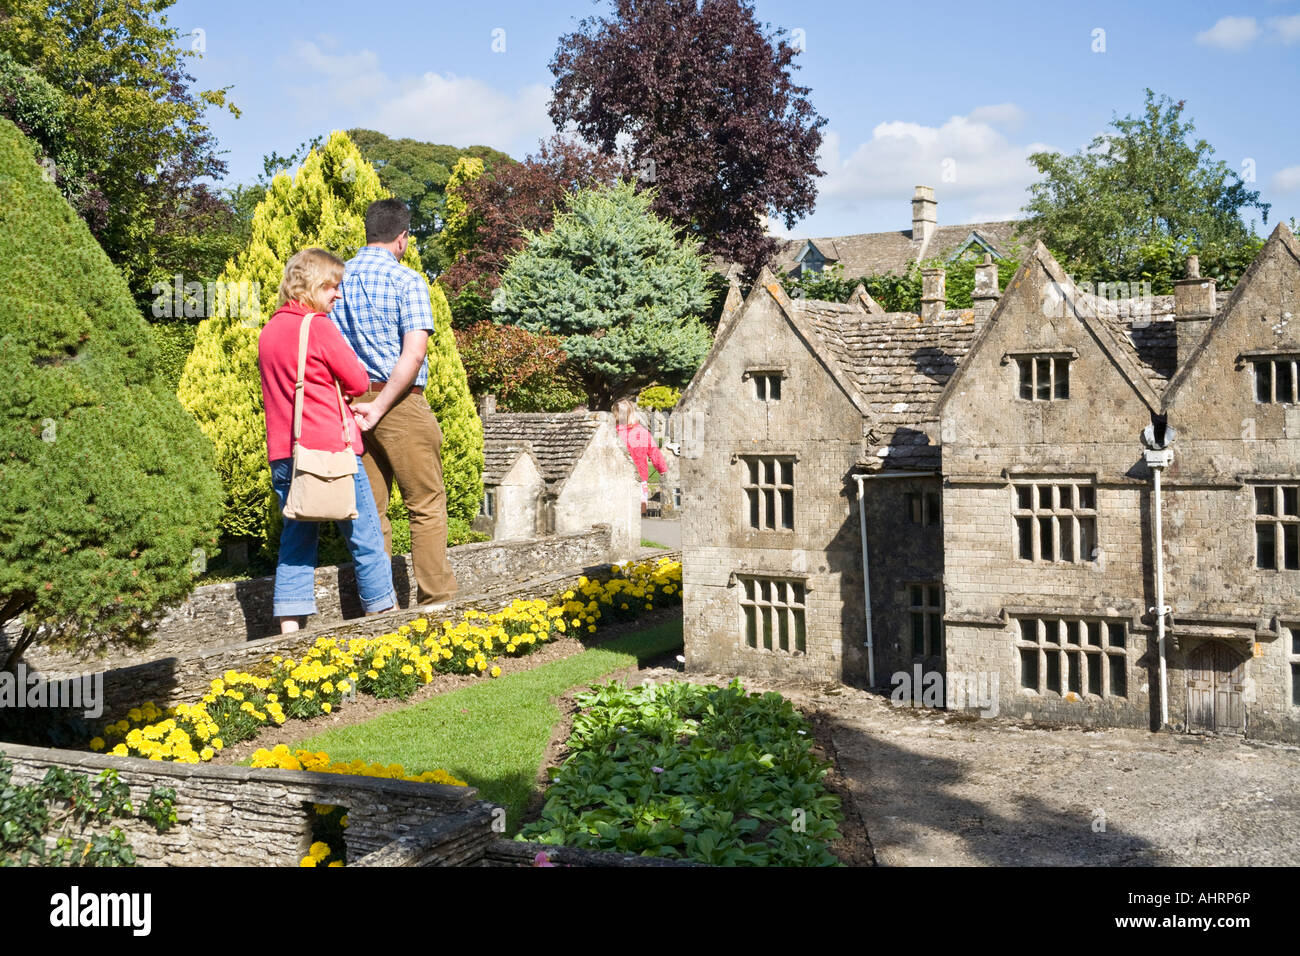 The model village behind the old new inn in the cotswold village of stock photo royalty free - The tiny house village a miniature settlement ...